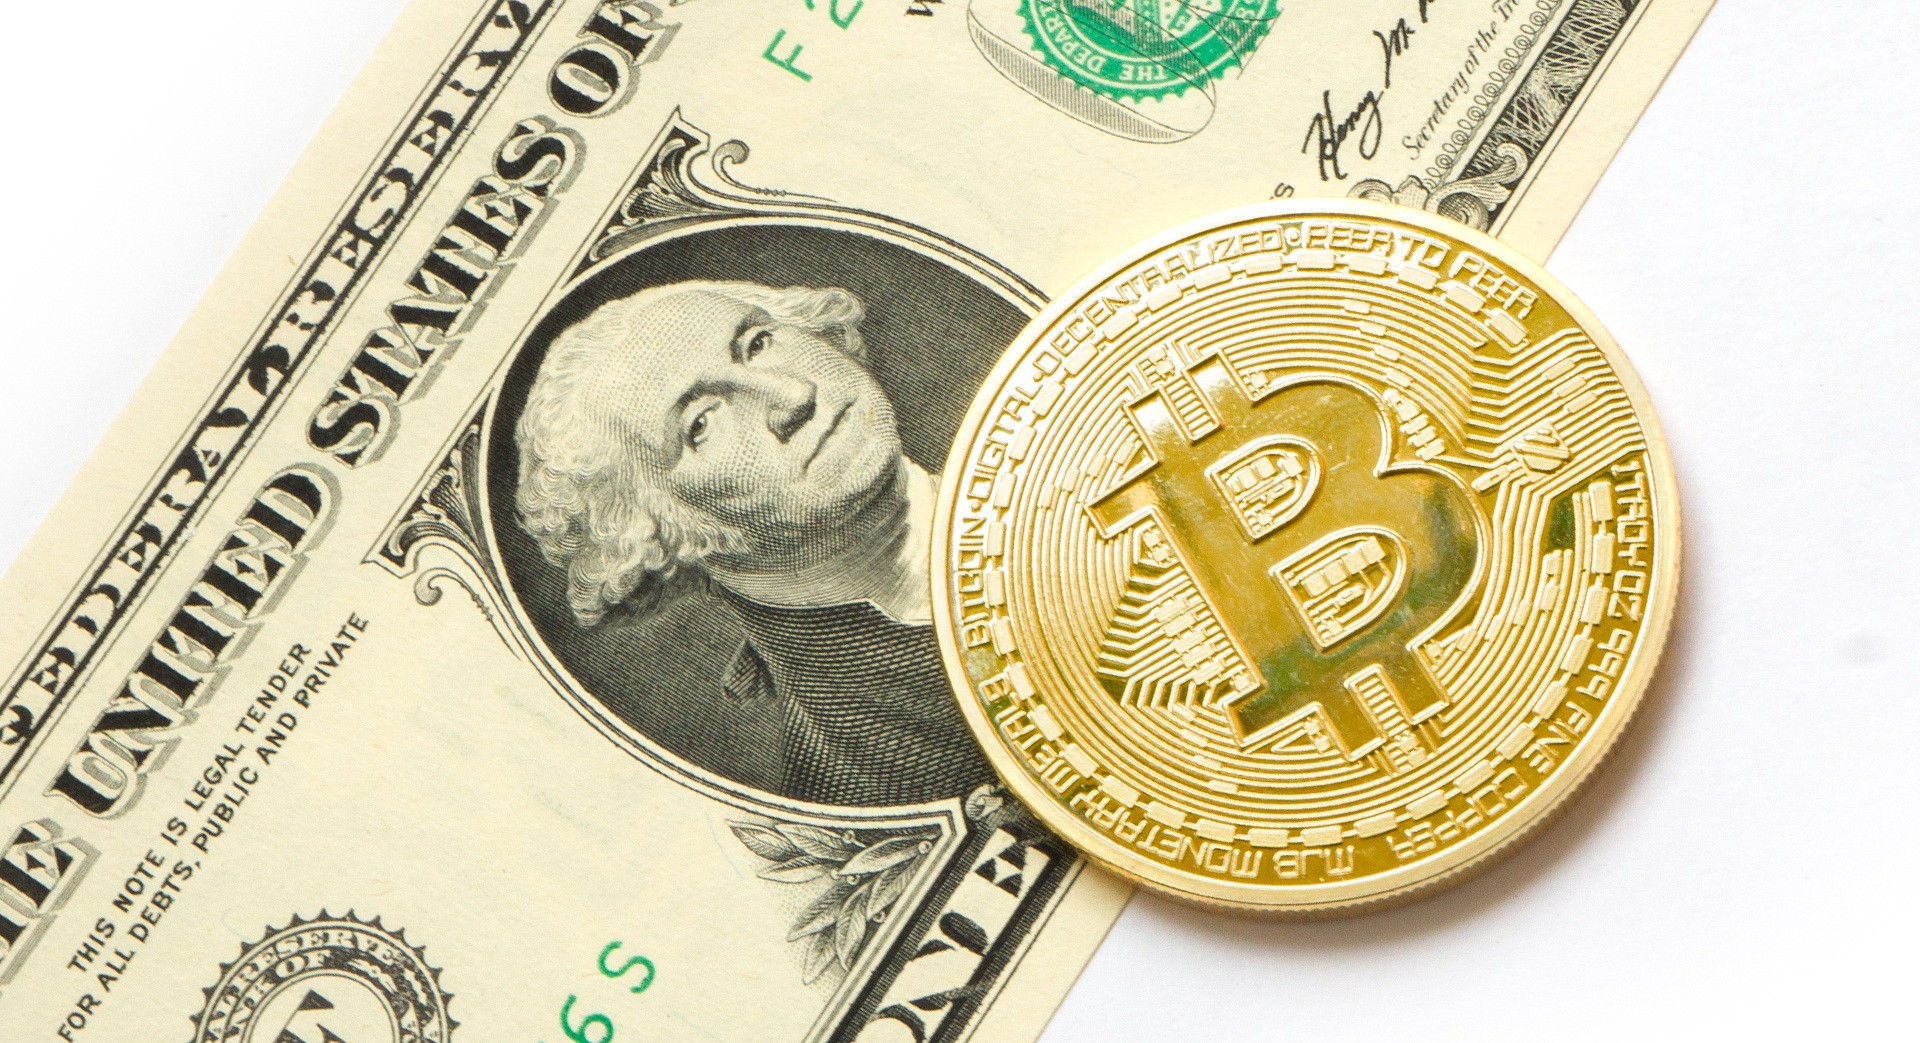 diffee crypto currency